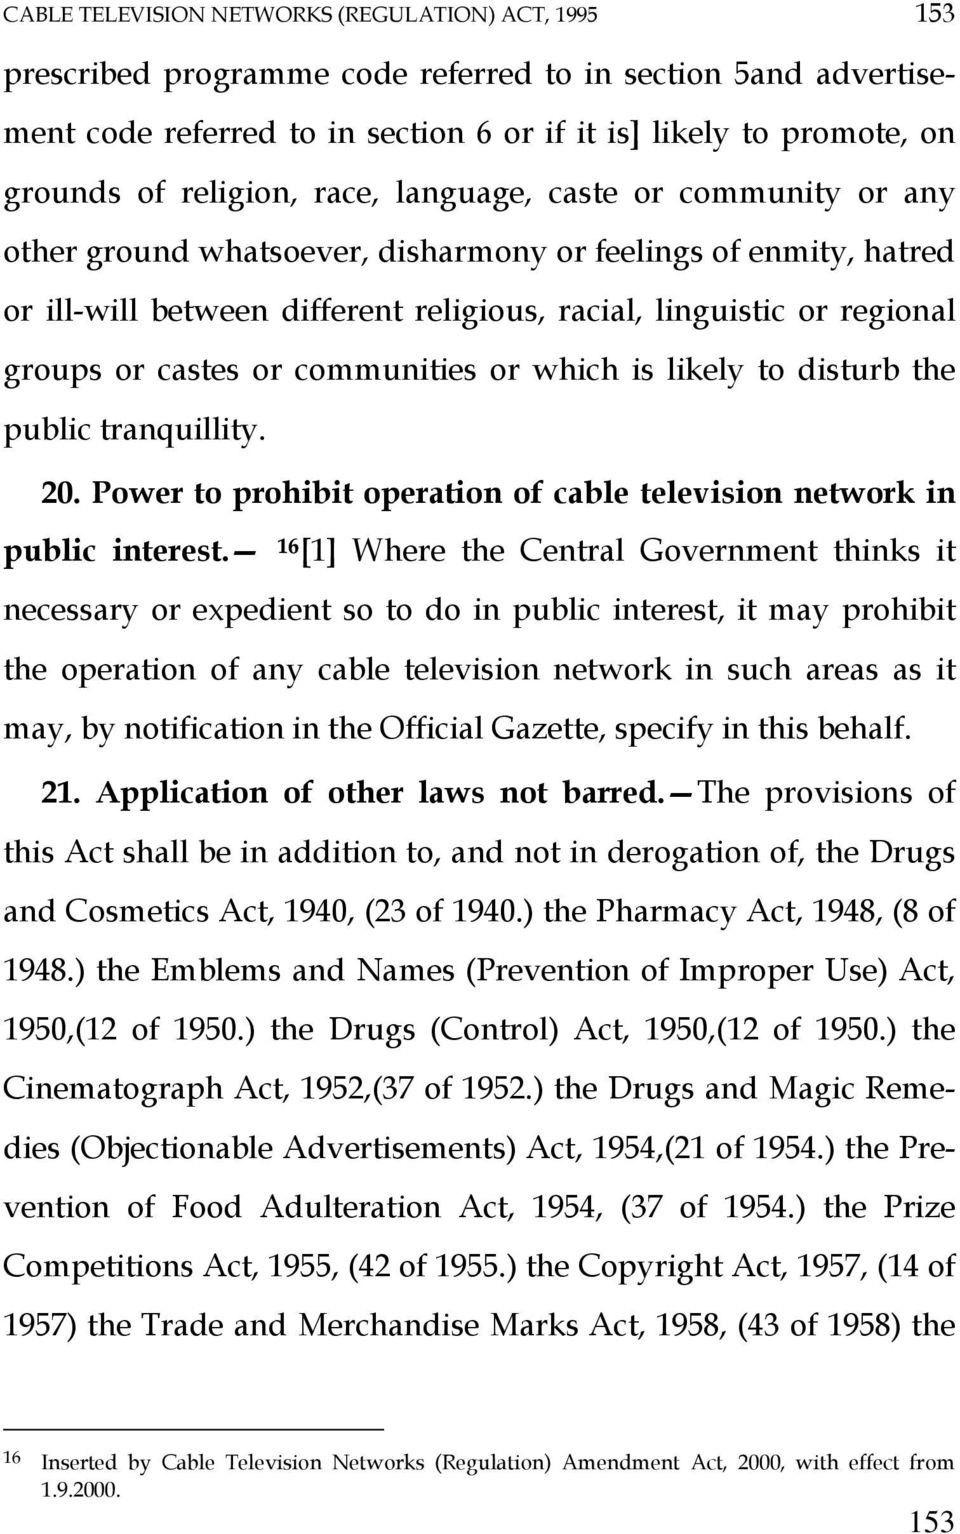 castes or communities or which is likely to disturb the public tranquillity. 20. Power to prohibit operation of cable television network in public interest.